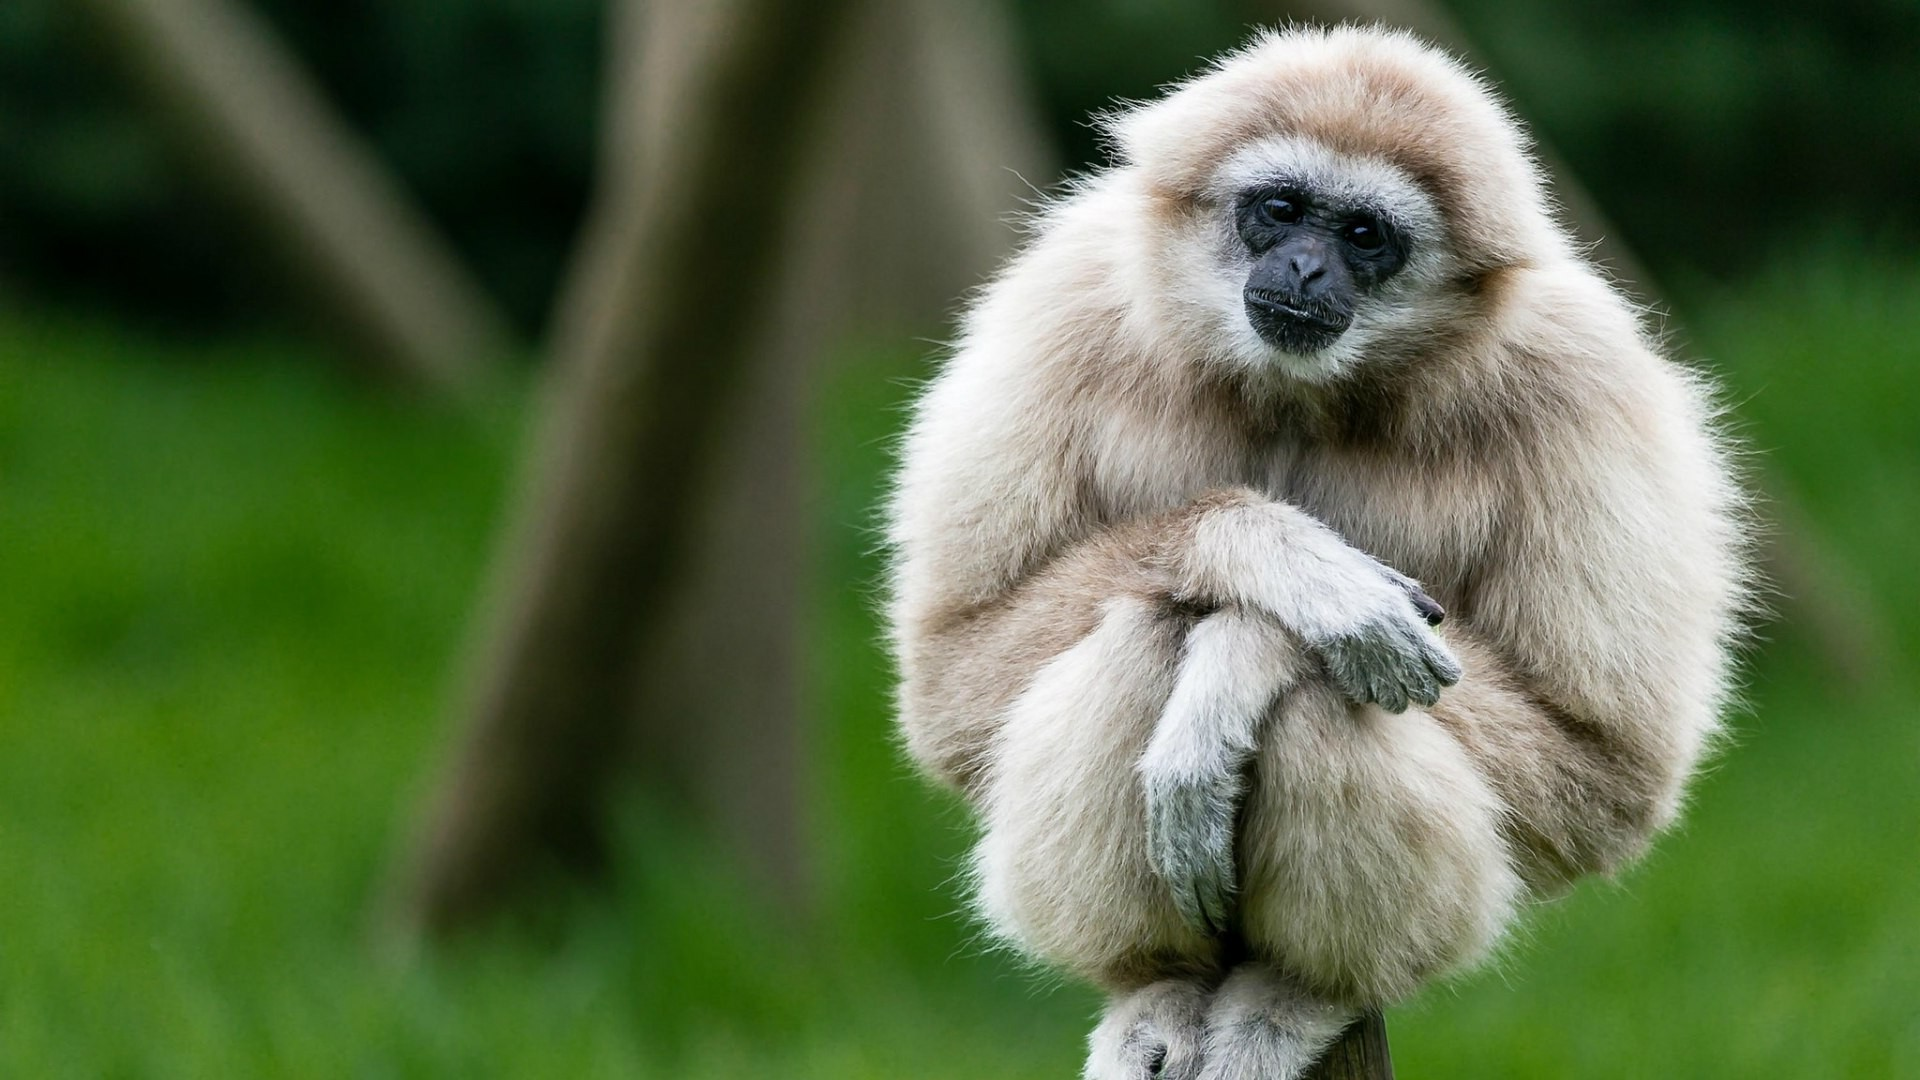 gibbons Animals Apes Wallpapers HD  Desktop and Mobile